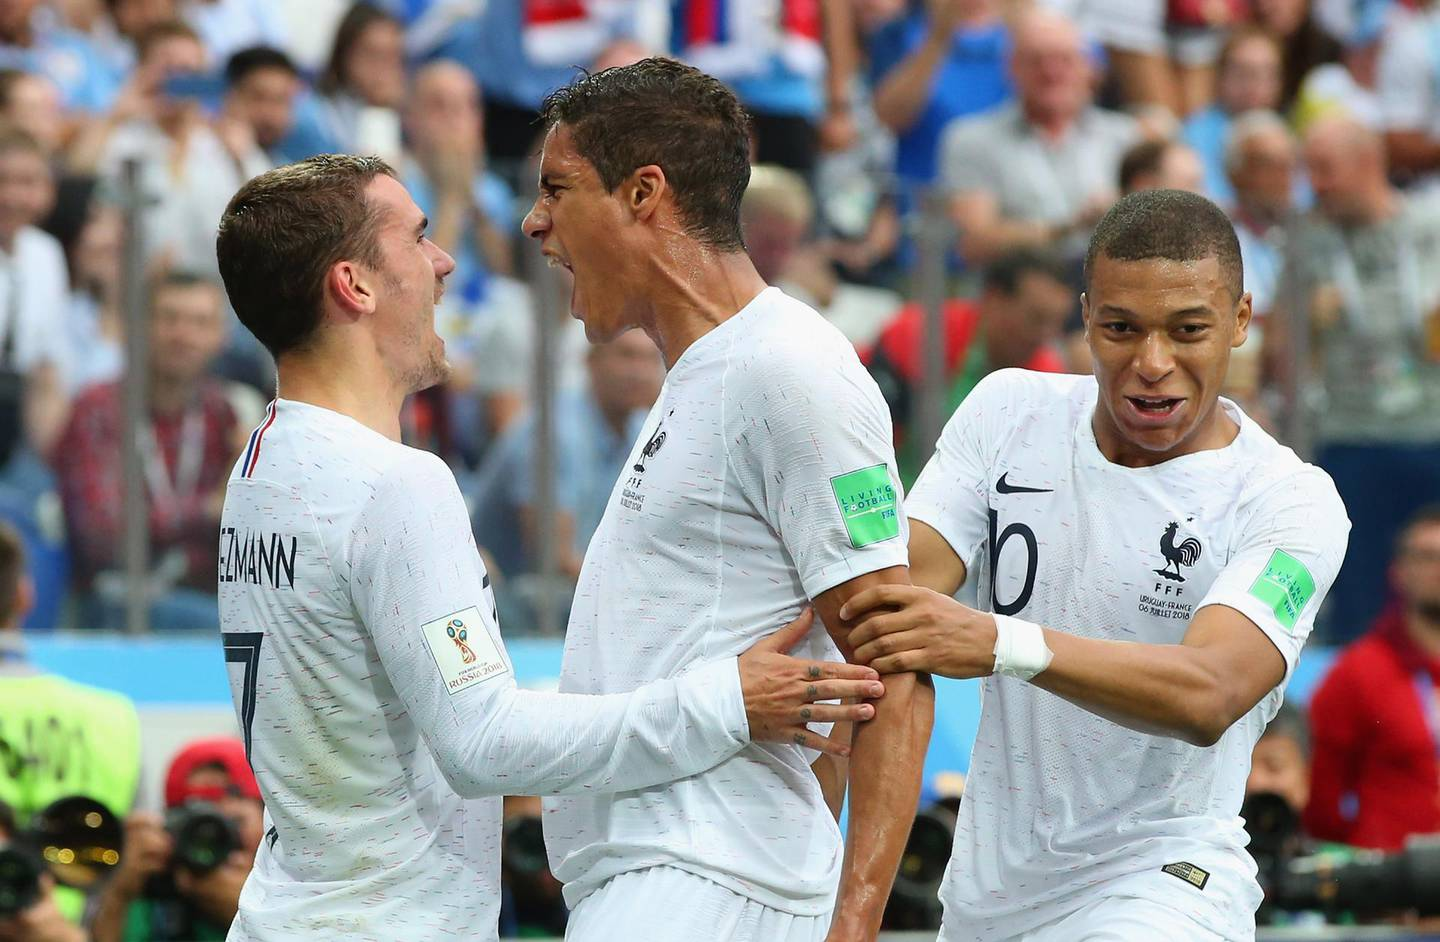 NIZHNY NOVGOROD, RUSSIA - JULY 06:  Raphael Varane of France celebrates with team mates Kylian Mbappe and Antoine Griezmann after scoring his team's first goal during the 2018 FIFA World Cup Russia Quarter Final match between Winner Game 49 and Winner Game 50 at Nizhny Novgorod Stadium on July 6, 2018 in Nizhny Novgorod, Russia.  (Photo by Alex Livesey/Getty Images)